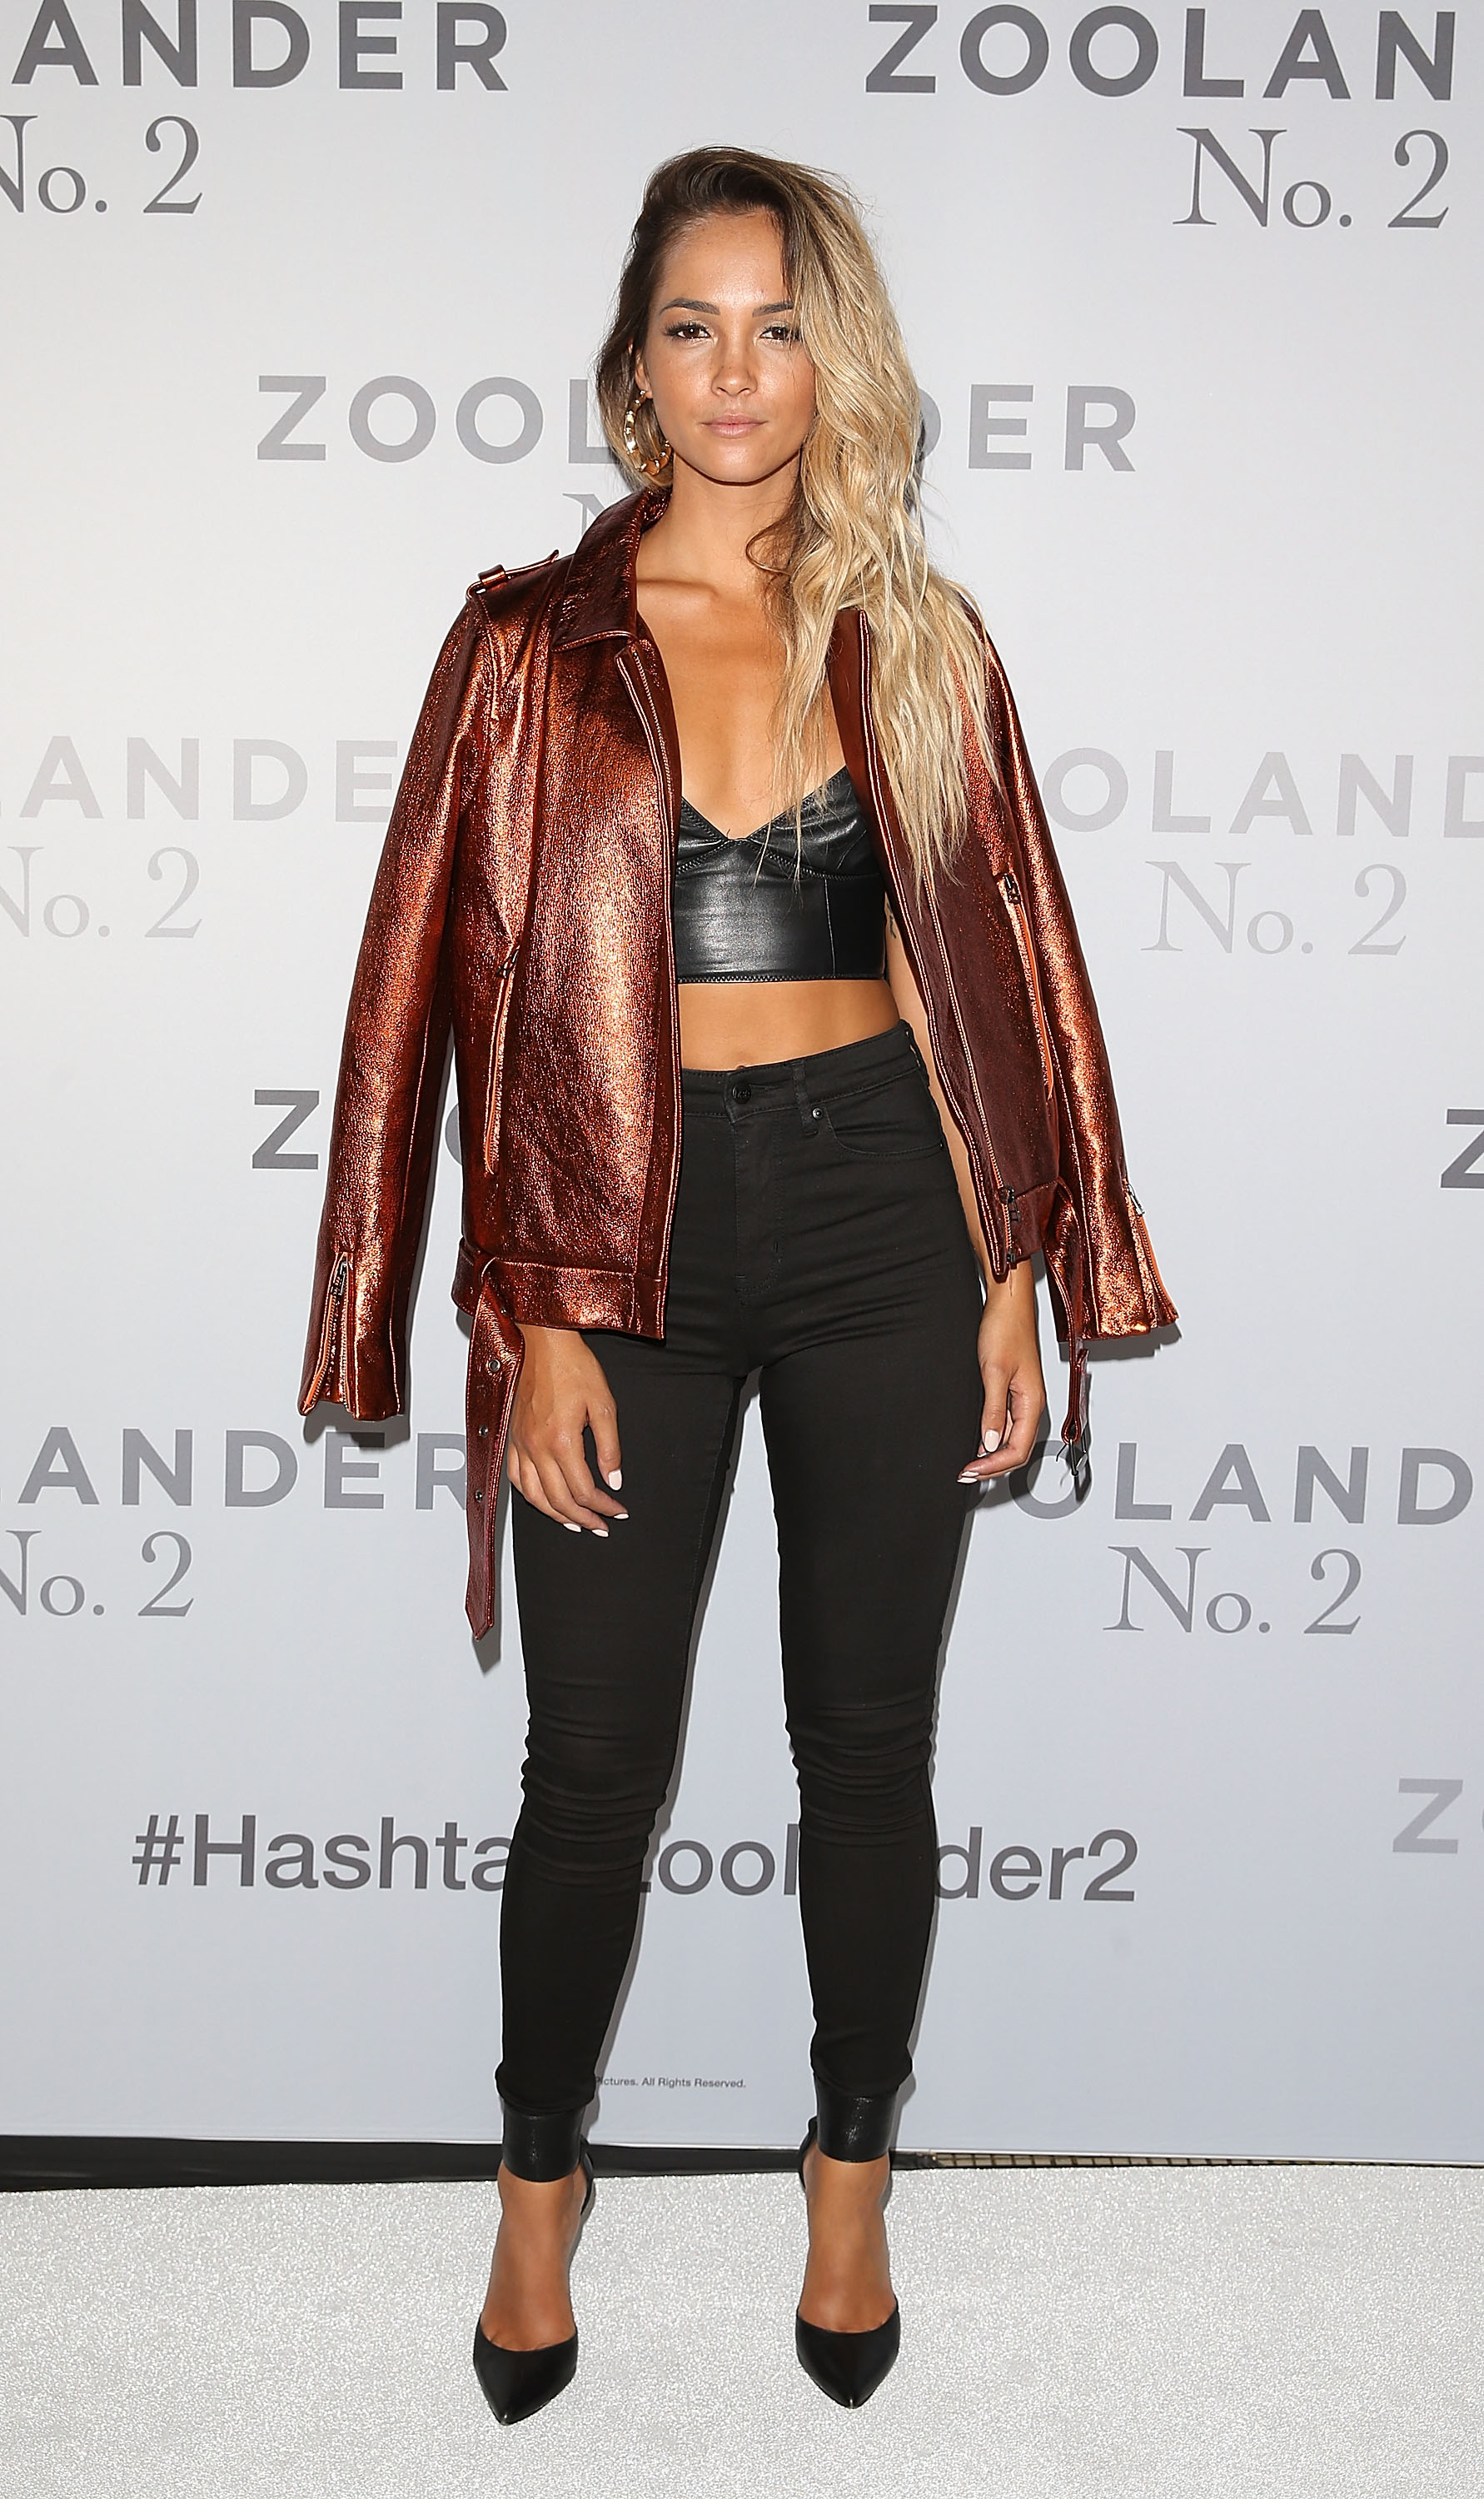 SYDNEY, AUSTRALIA - JANUARY 26: Aisha Jade attends the Sydney Fan Screening Event of the Paramount Pictures film 'Zoolander No. 2' at the State Theatre on January 26, 2016 in Sydney, Australia. (Photo by Caroline McCredie/Getty Images for Paramount Pictures) *** Local Caption *** Aisha Jade